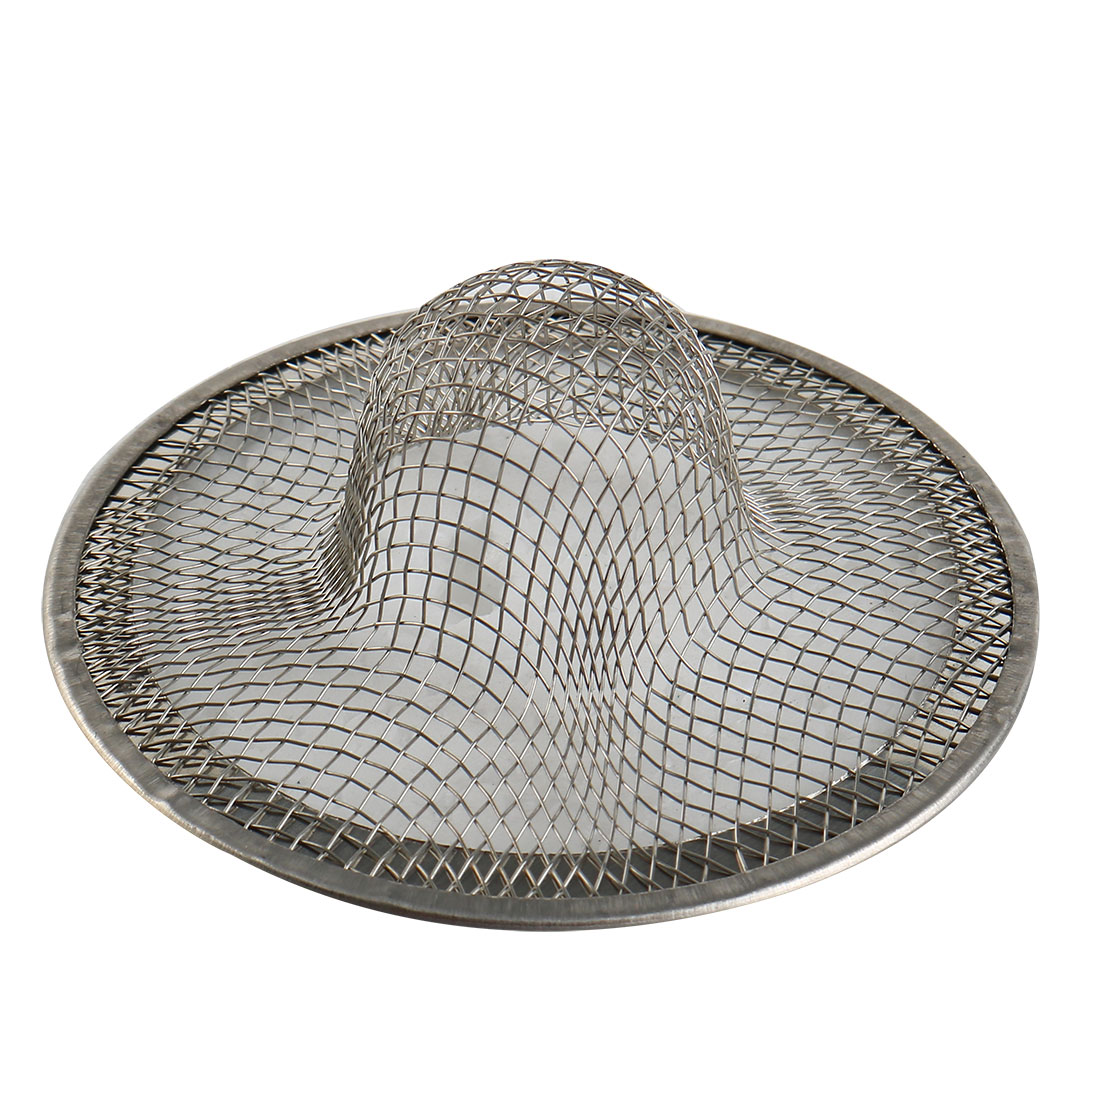 "2PCS 2.7"" Diameter Stainless Steel Drainer Basin Filter Mesh Sink Strainer"